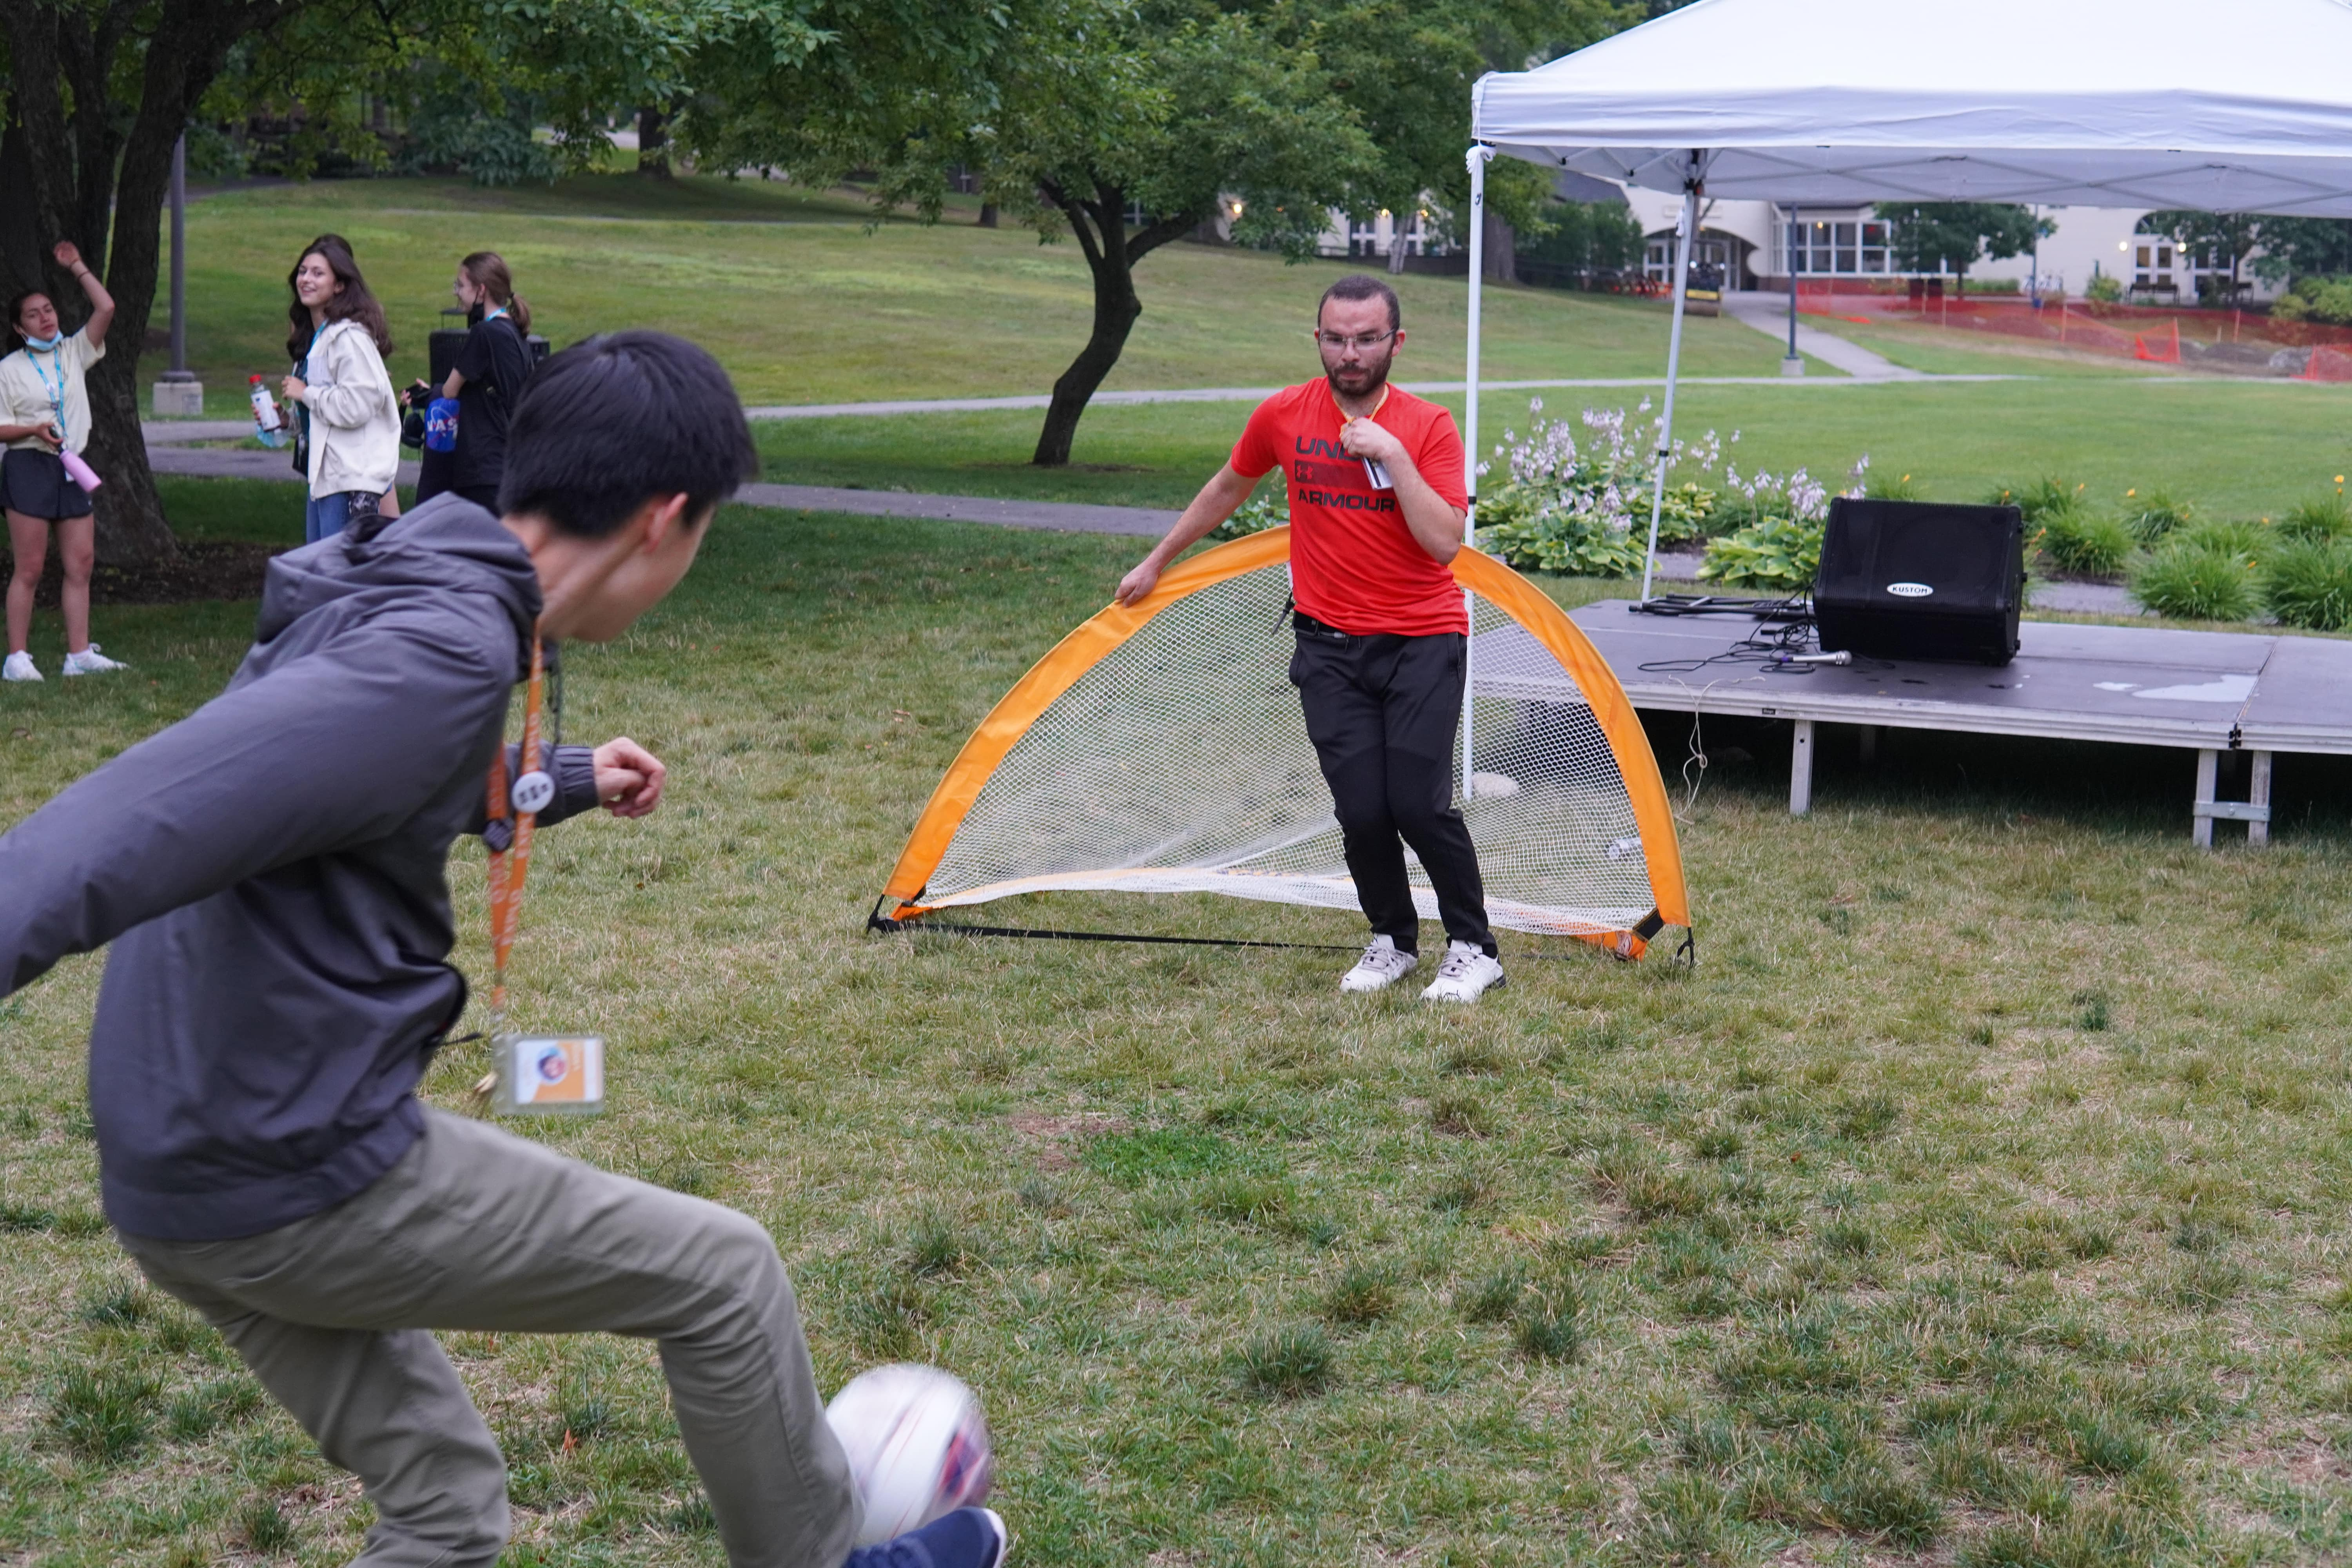 A staff member kicks a soccer ball toward another standing in front of a goal in a soccer game on the quad.